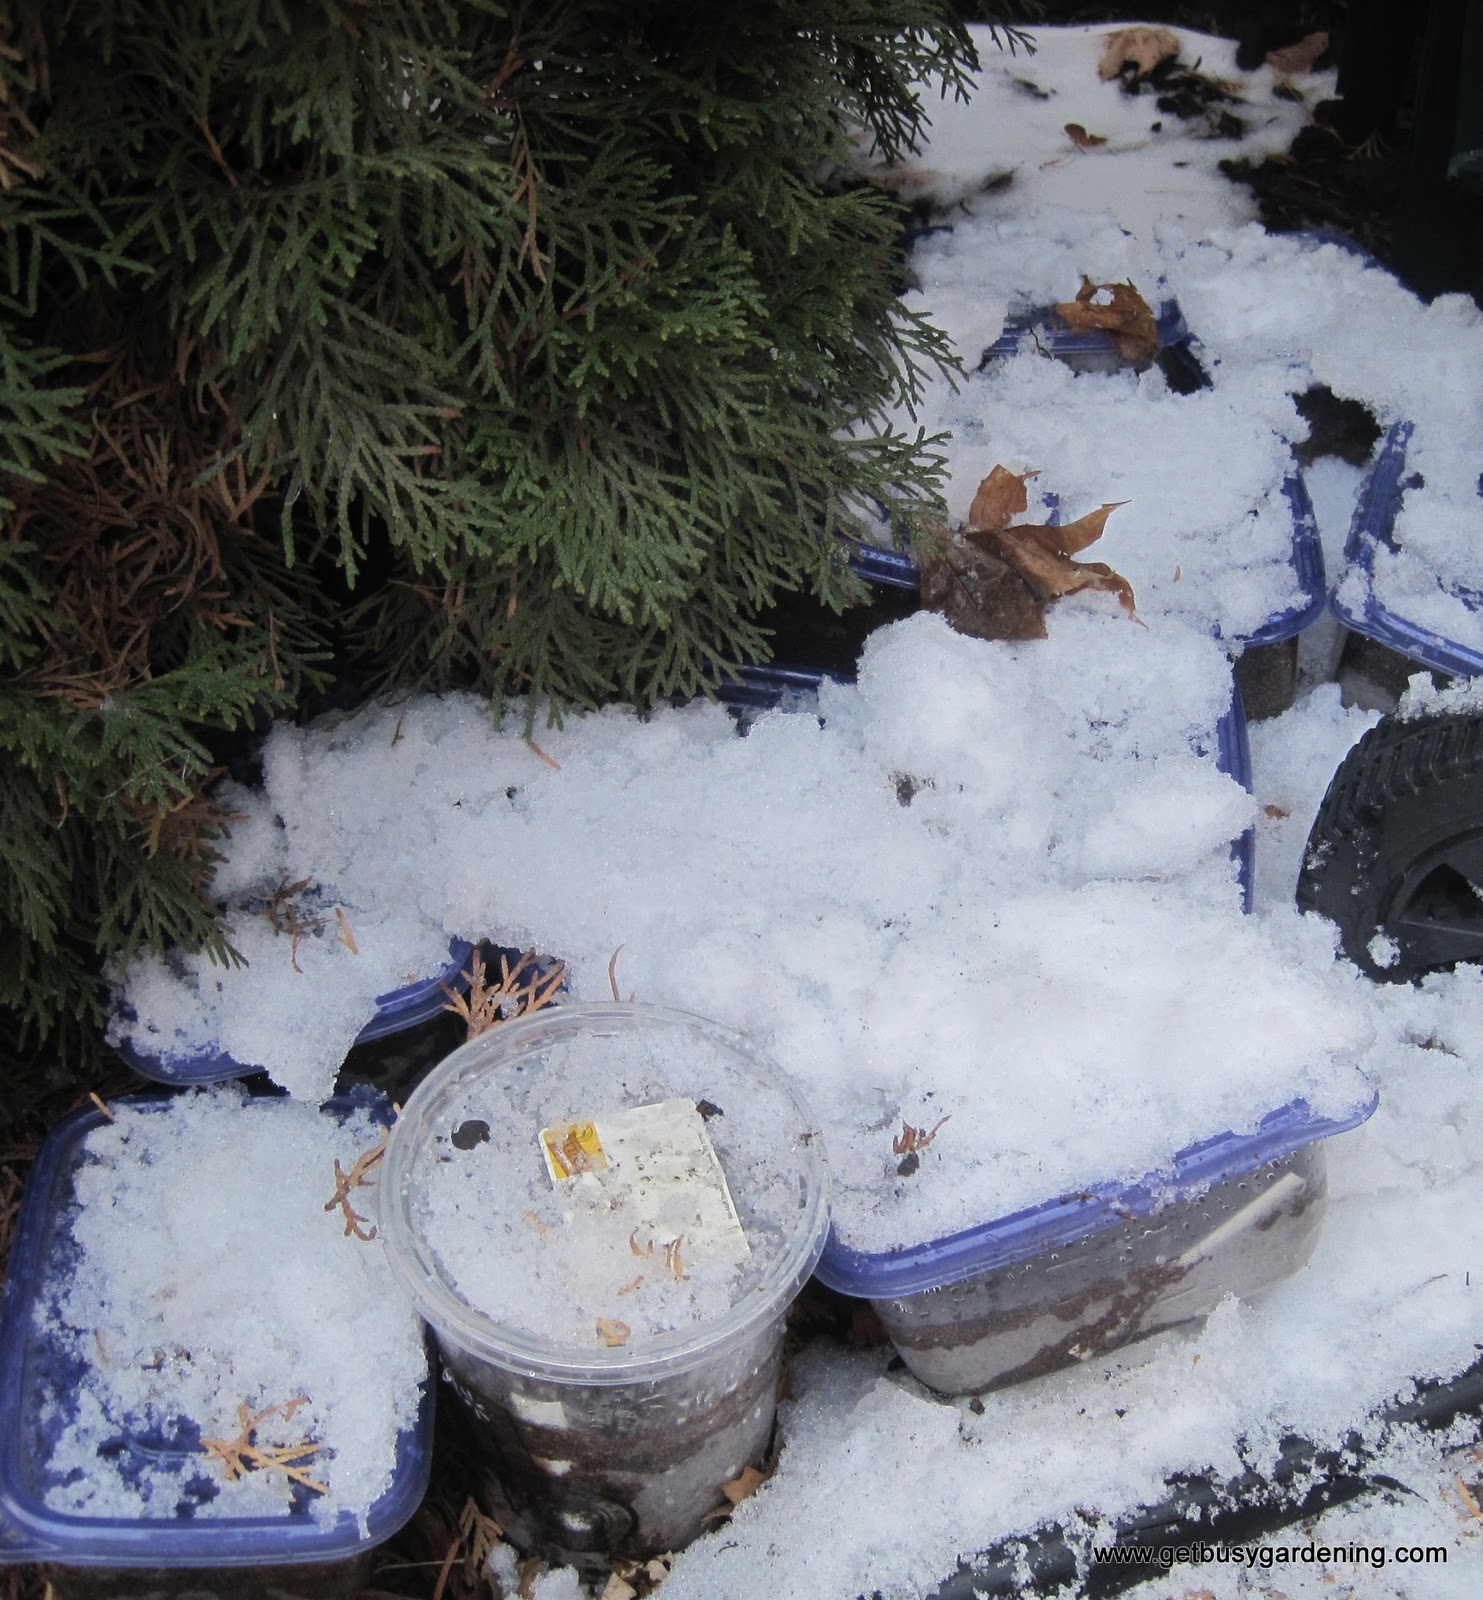 Winter sown containers buried under snow